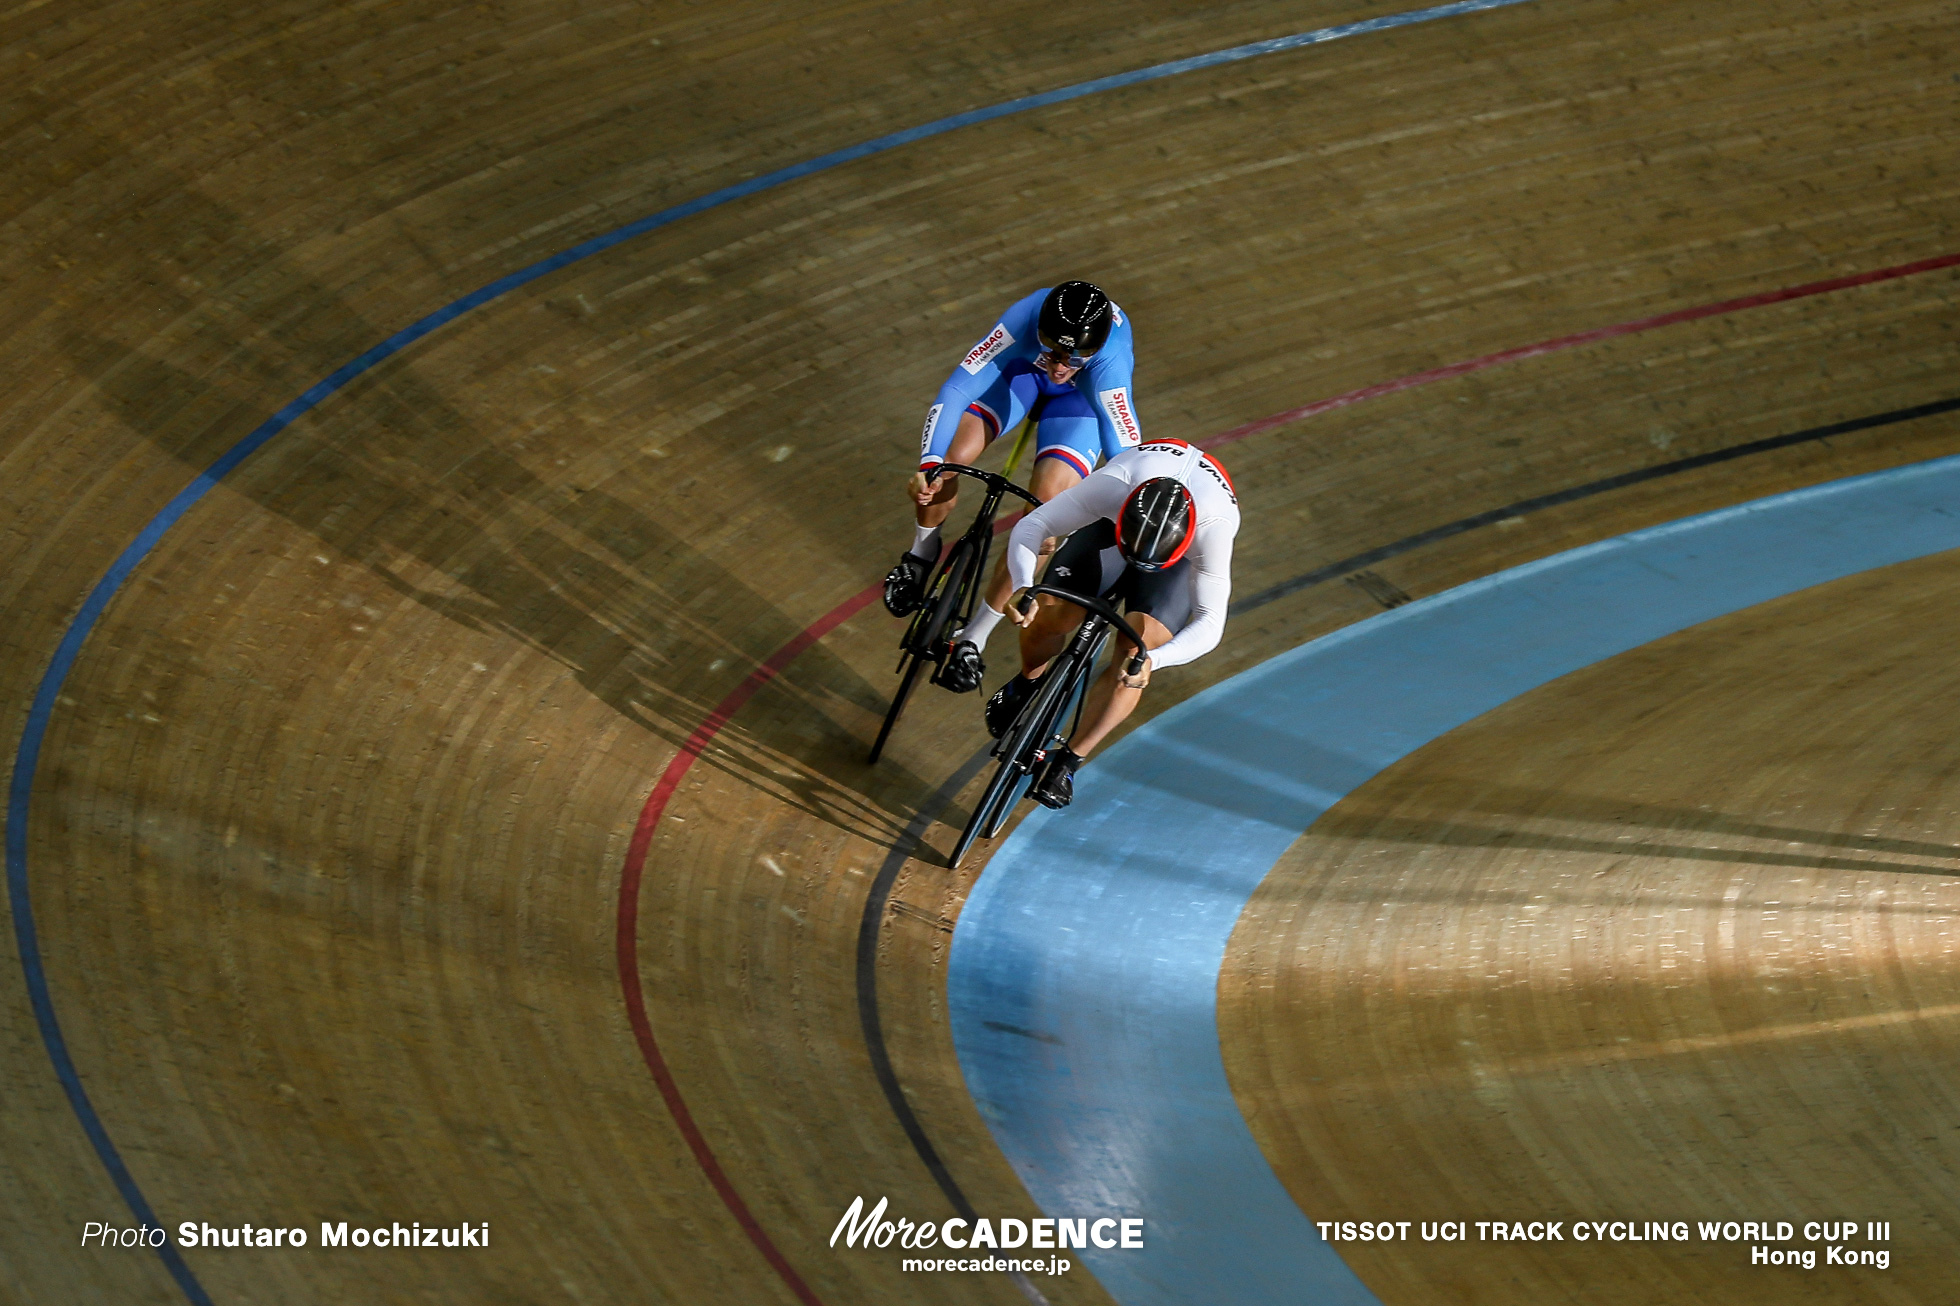 1st Round / Men's Sprint / TISSOT UCI TRACK CYCLING WORLD CUP III, Hong Kong